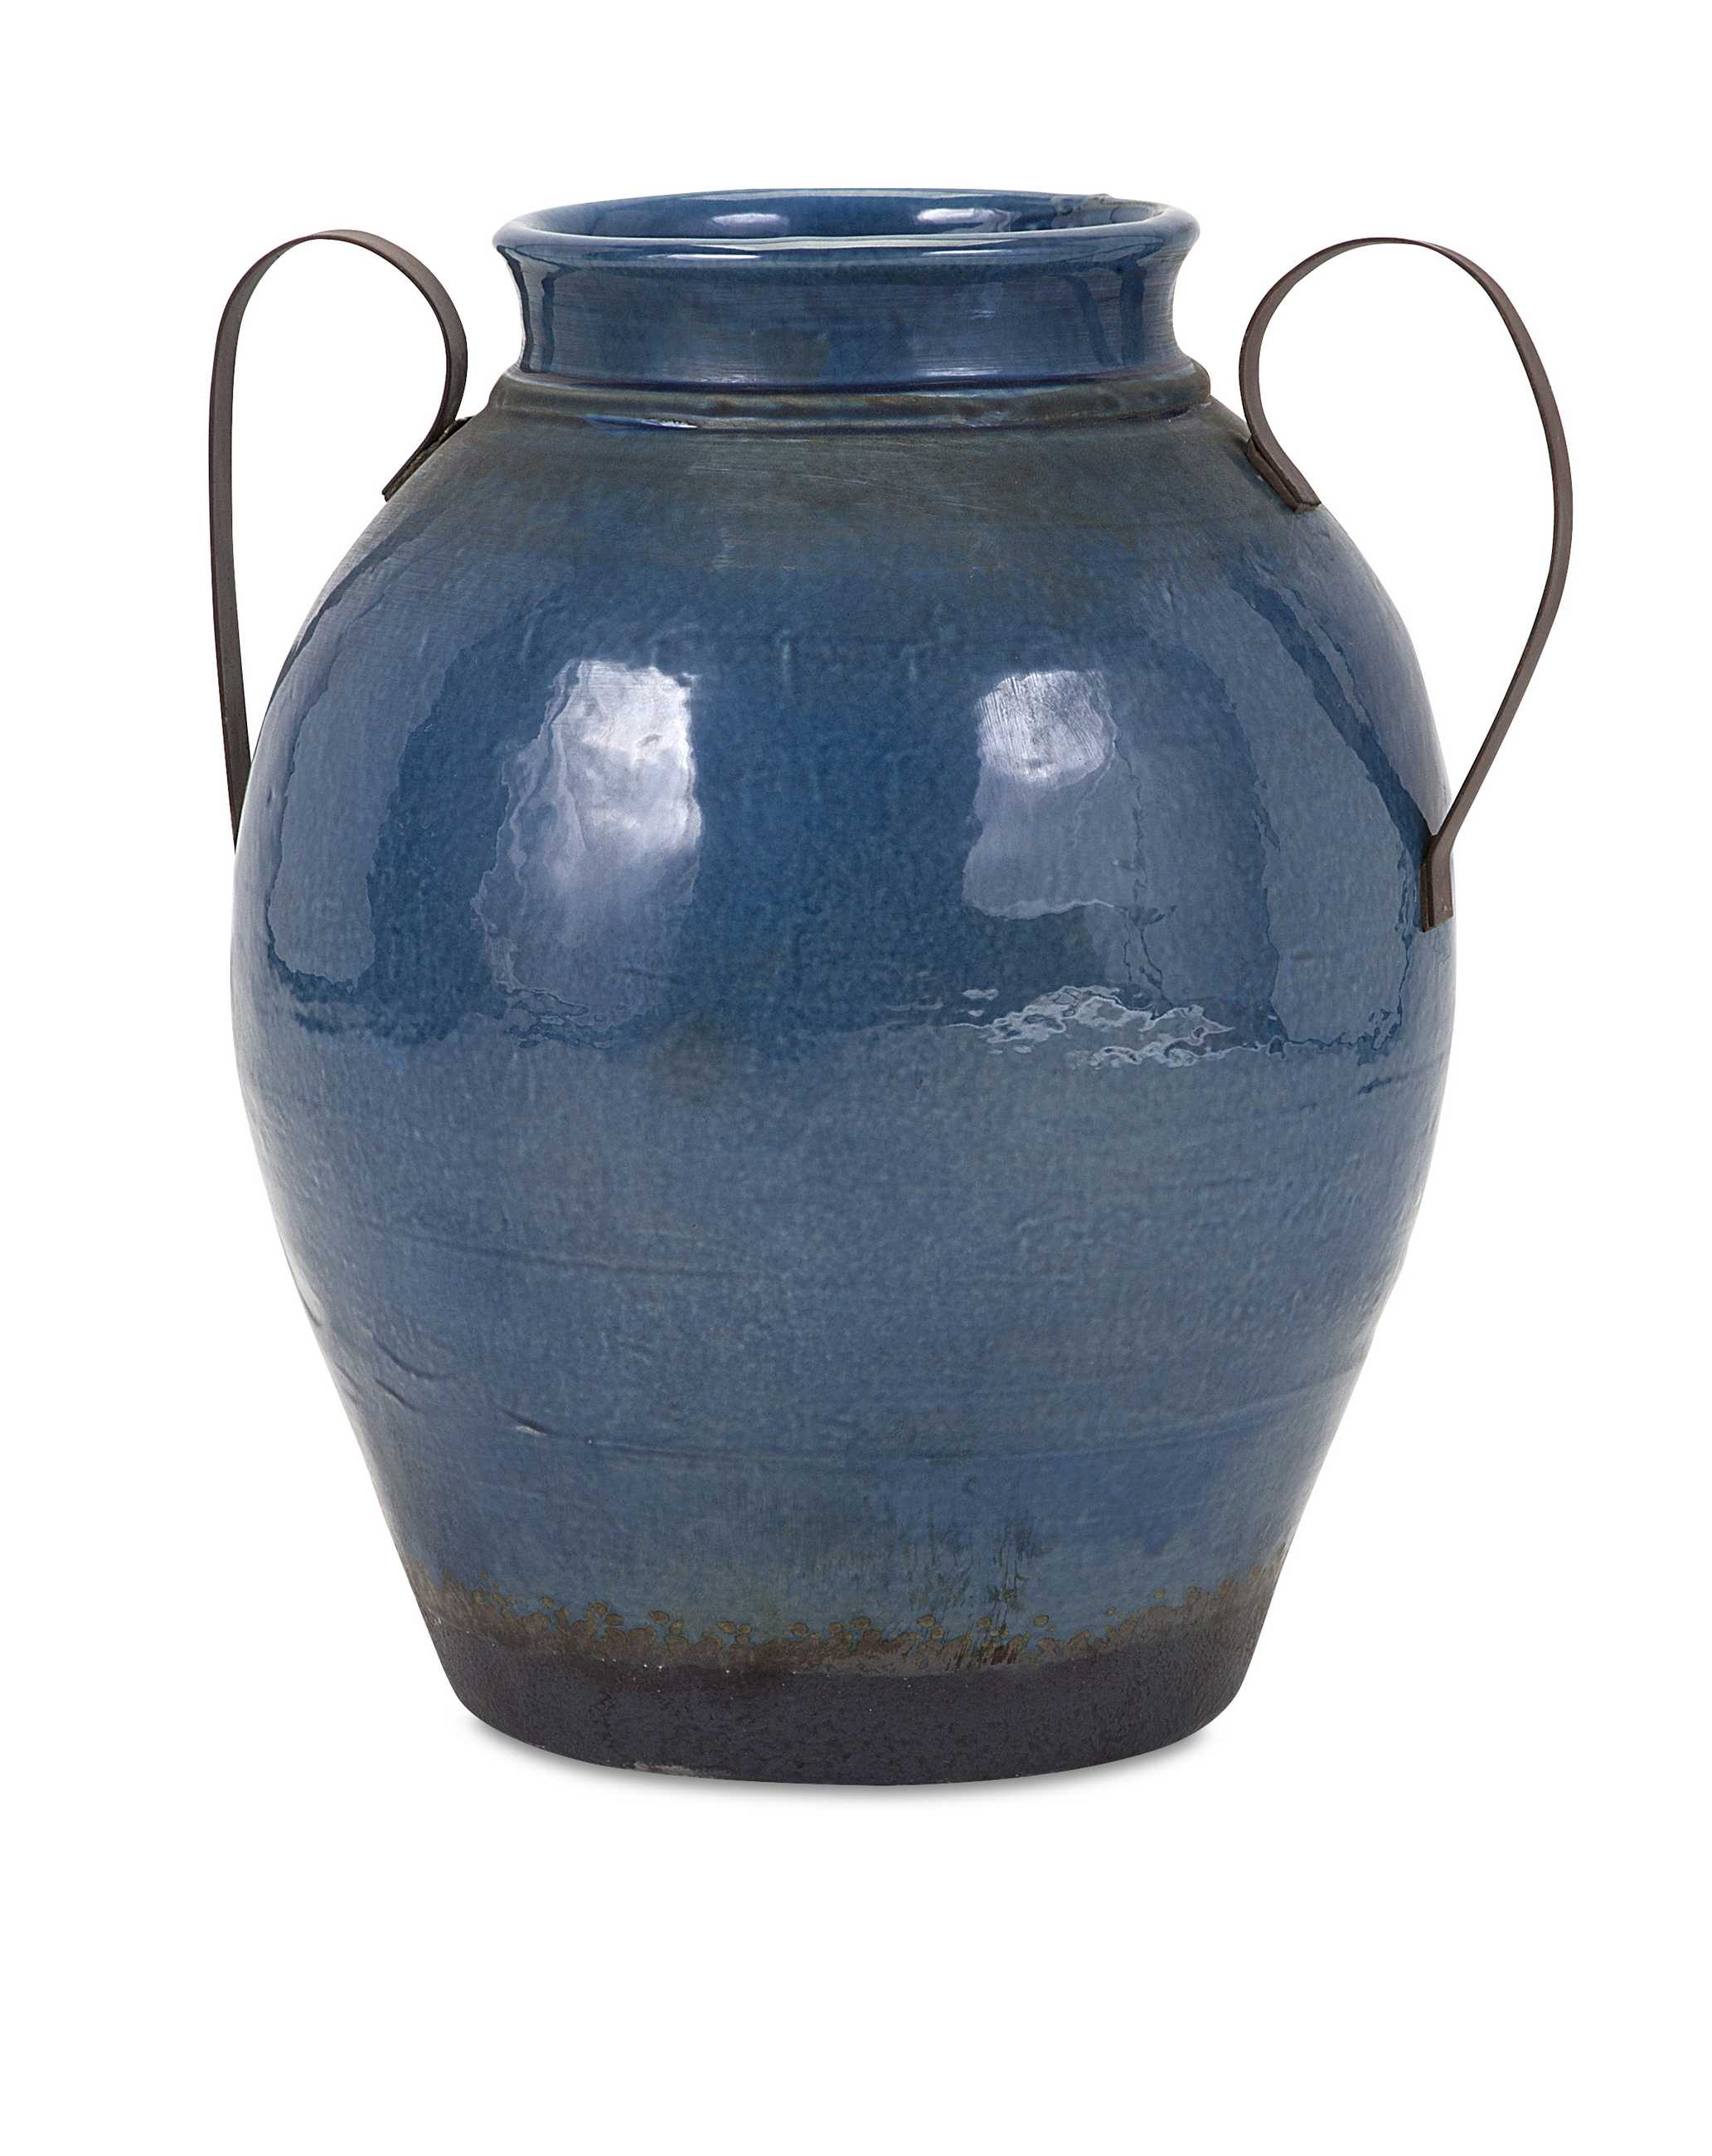 Attractive Large Vase with Metal Handles